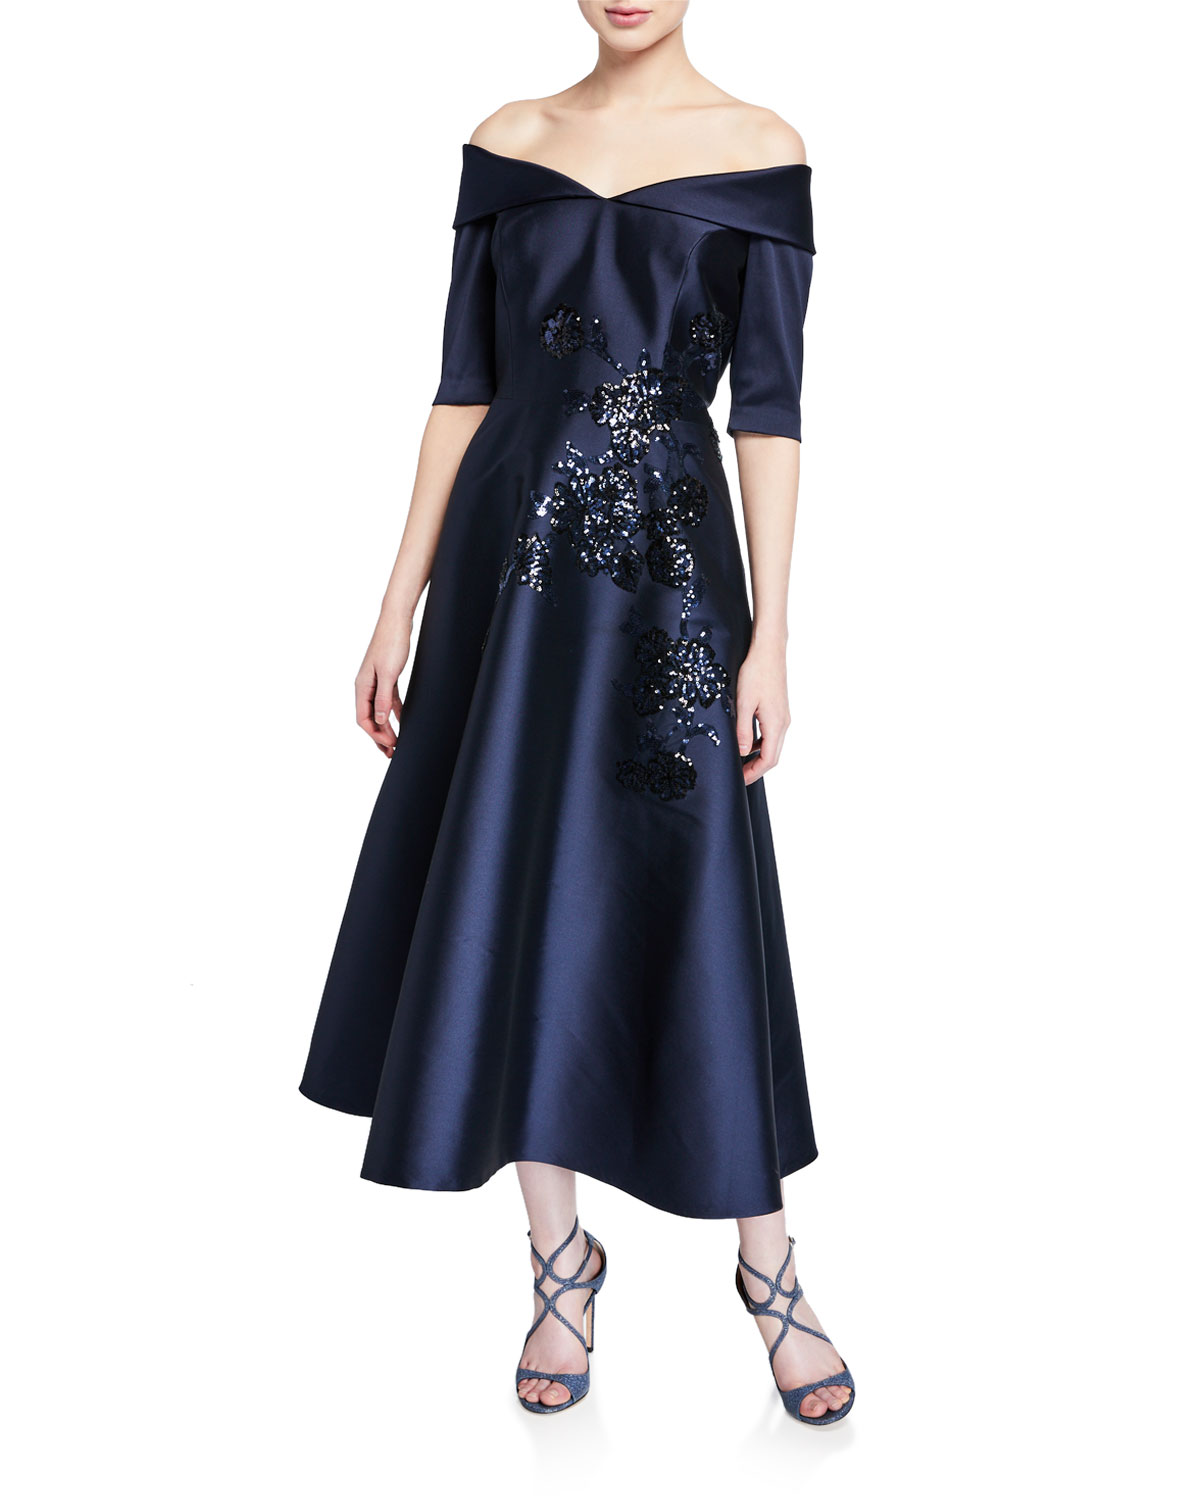 Rickie Freeman for Teri Jon Off-the-Shoulder Elbow-Sleeve Mikado Dress w/ Sequin Detail